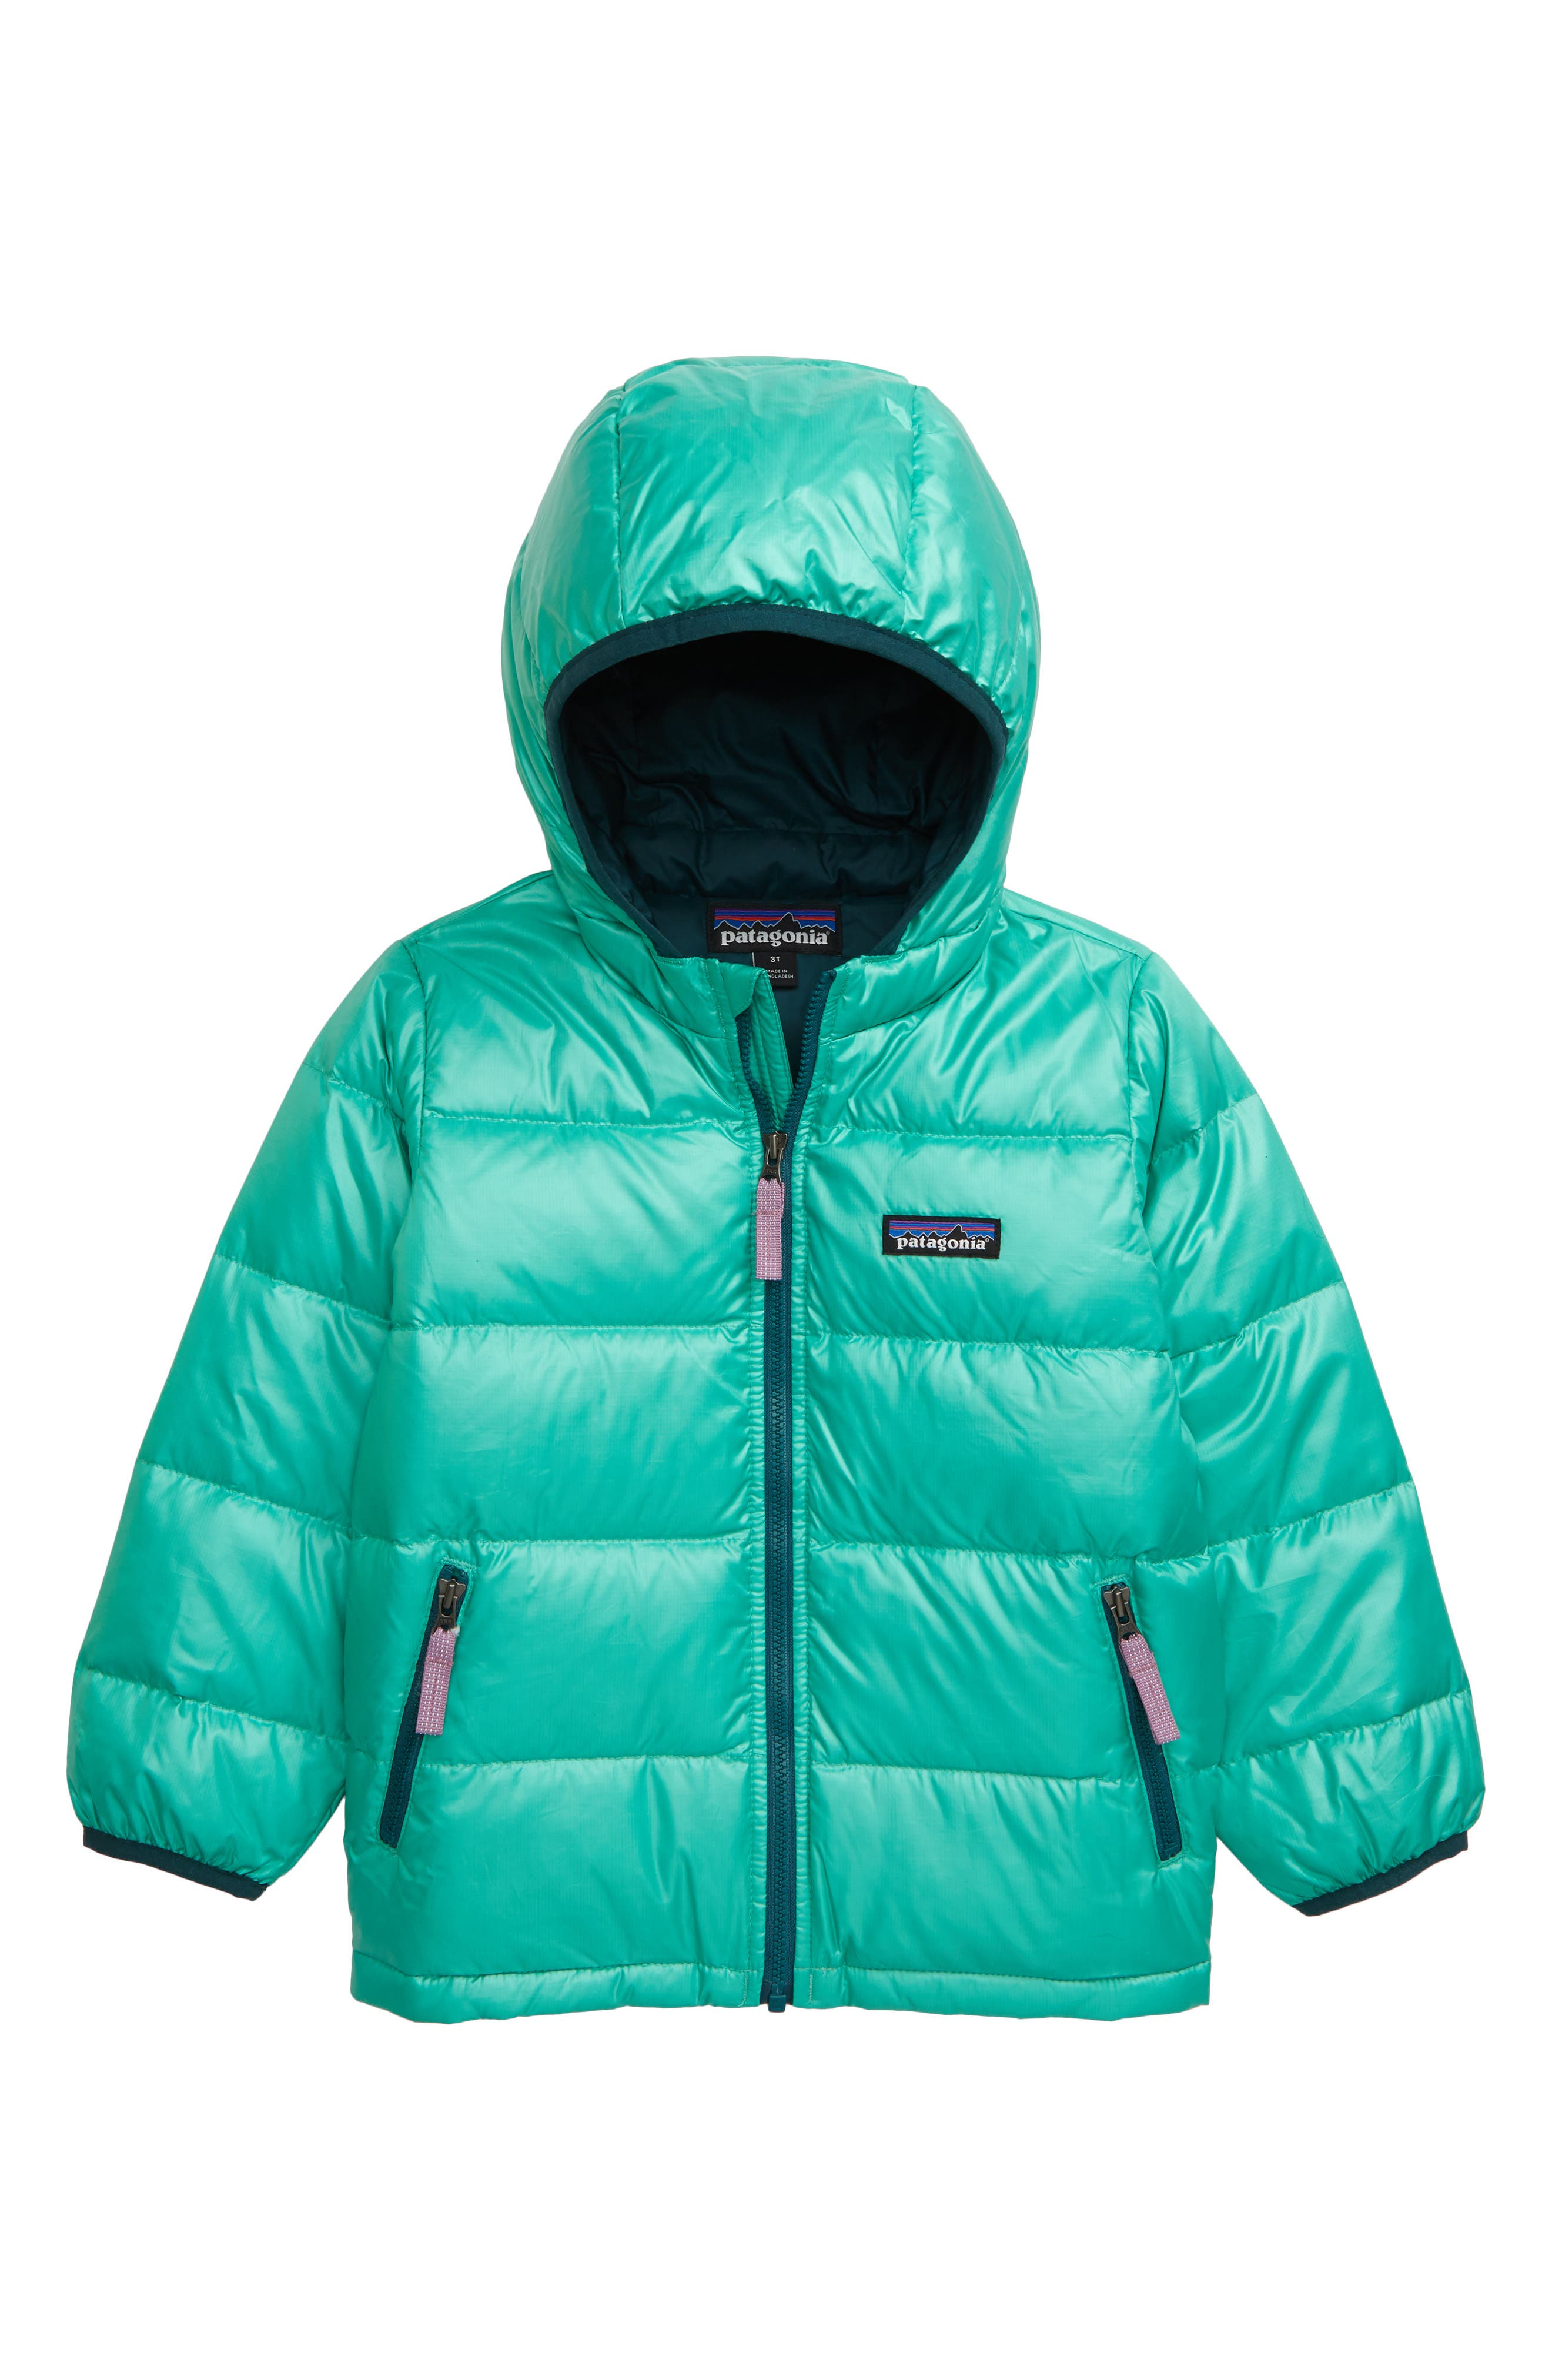 Keep your little one toasty warm in a channel-quilted front-zip jacket insulated with deliciously cozy (and oh-so-compressible) 600-fill-power duck down. A three-panel hood offers a stay-put fit, while elasticized hems fend off the wintry chill. Style Name: Patagonia Down Jacket (Toddler Girl). Style Number: 5334529 3. Available in stores.